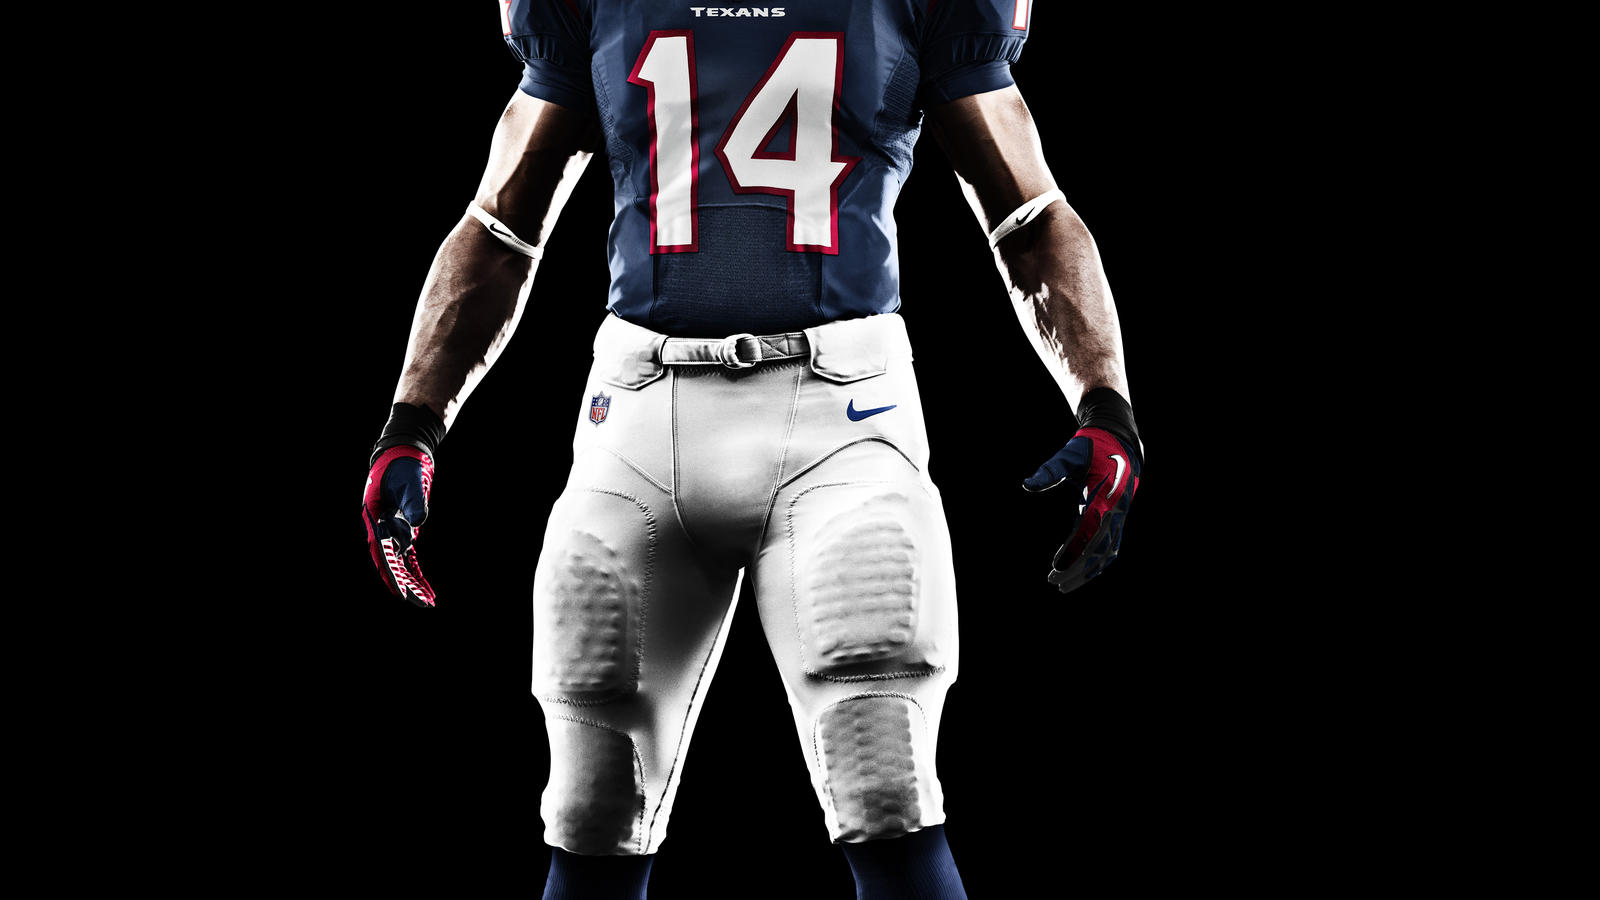 SU12_AT_NFL_UNIFORM_FRONT_TEXANS